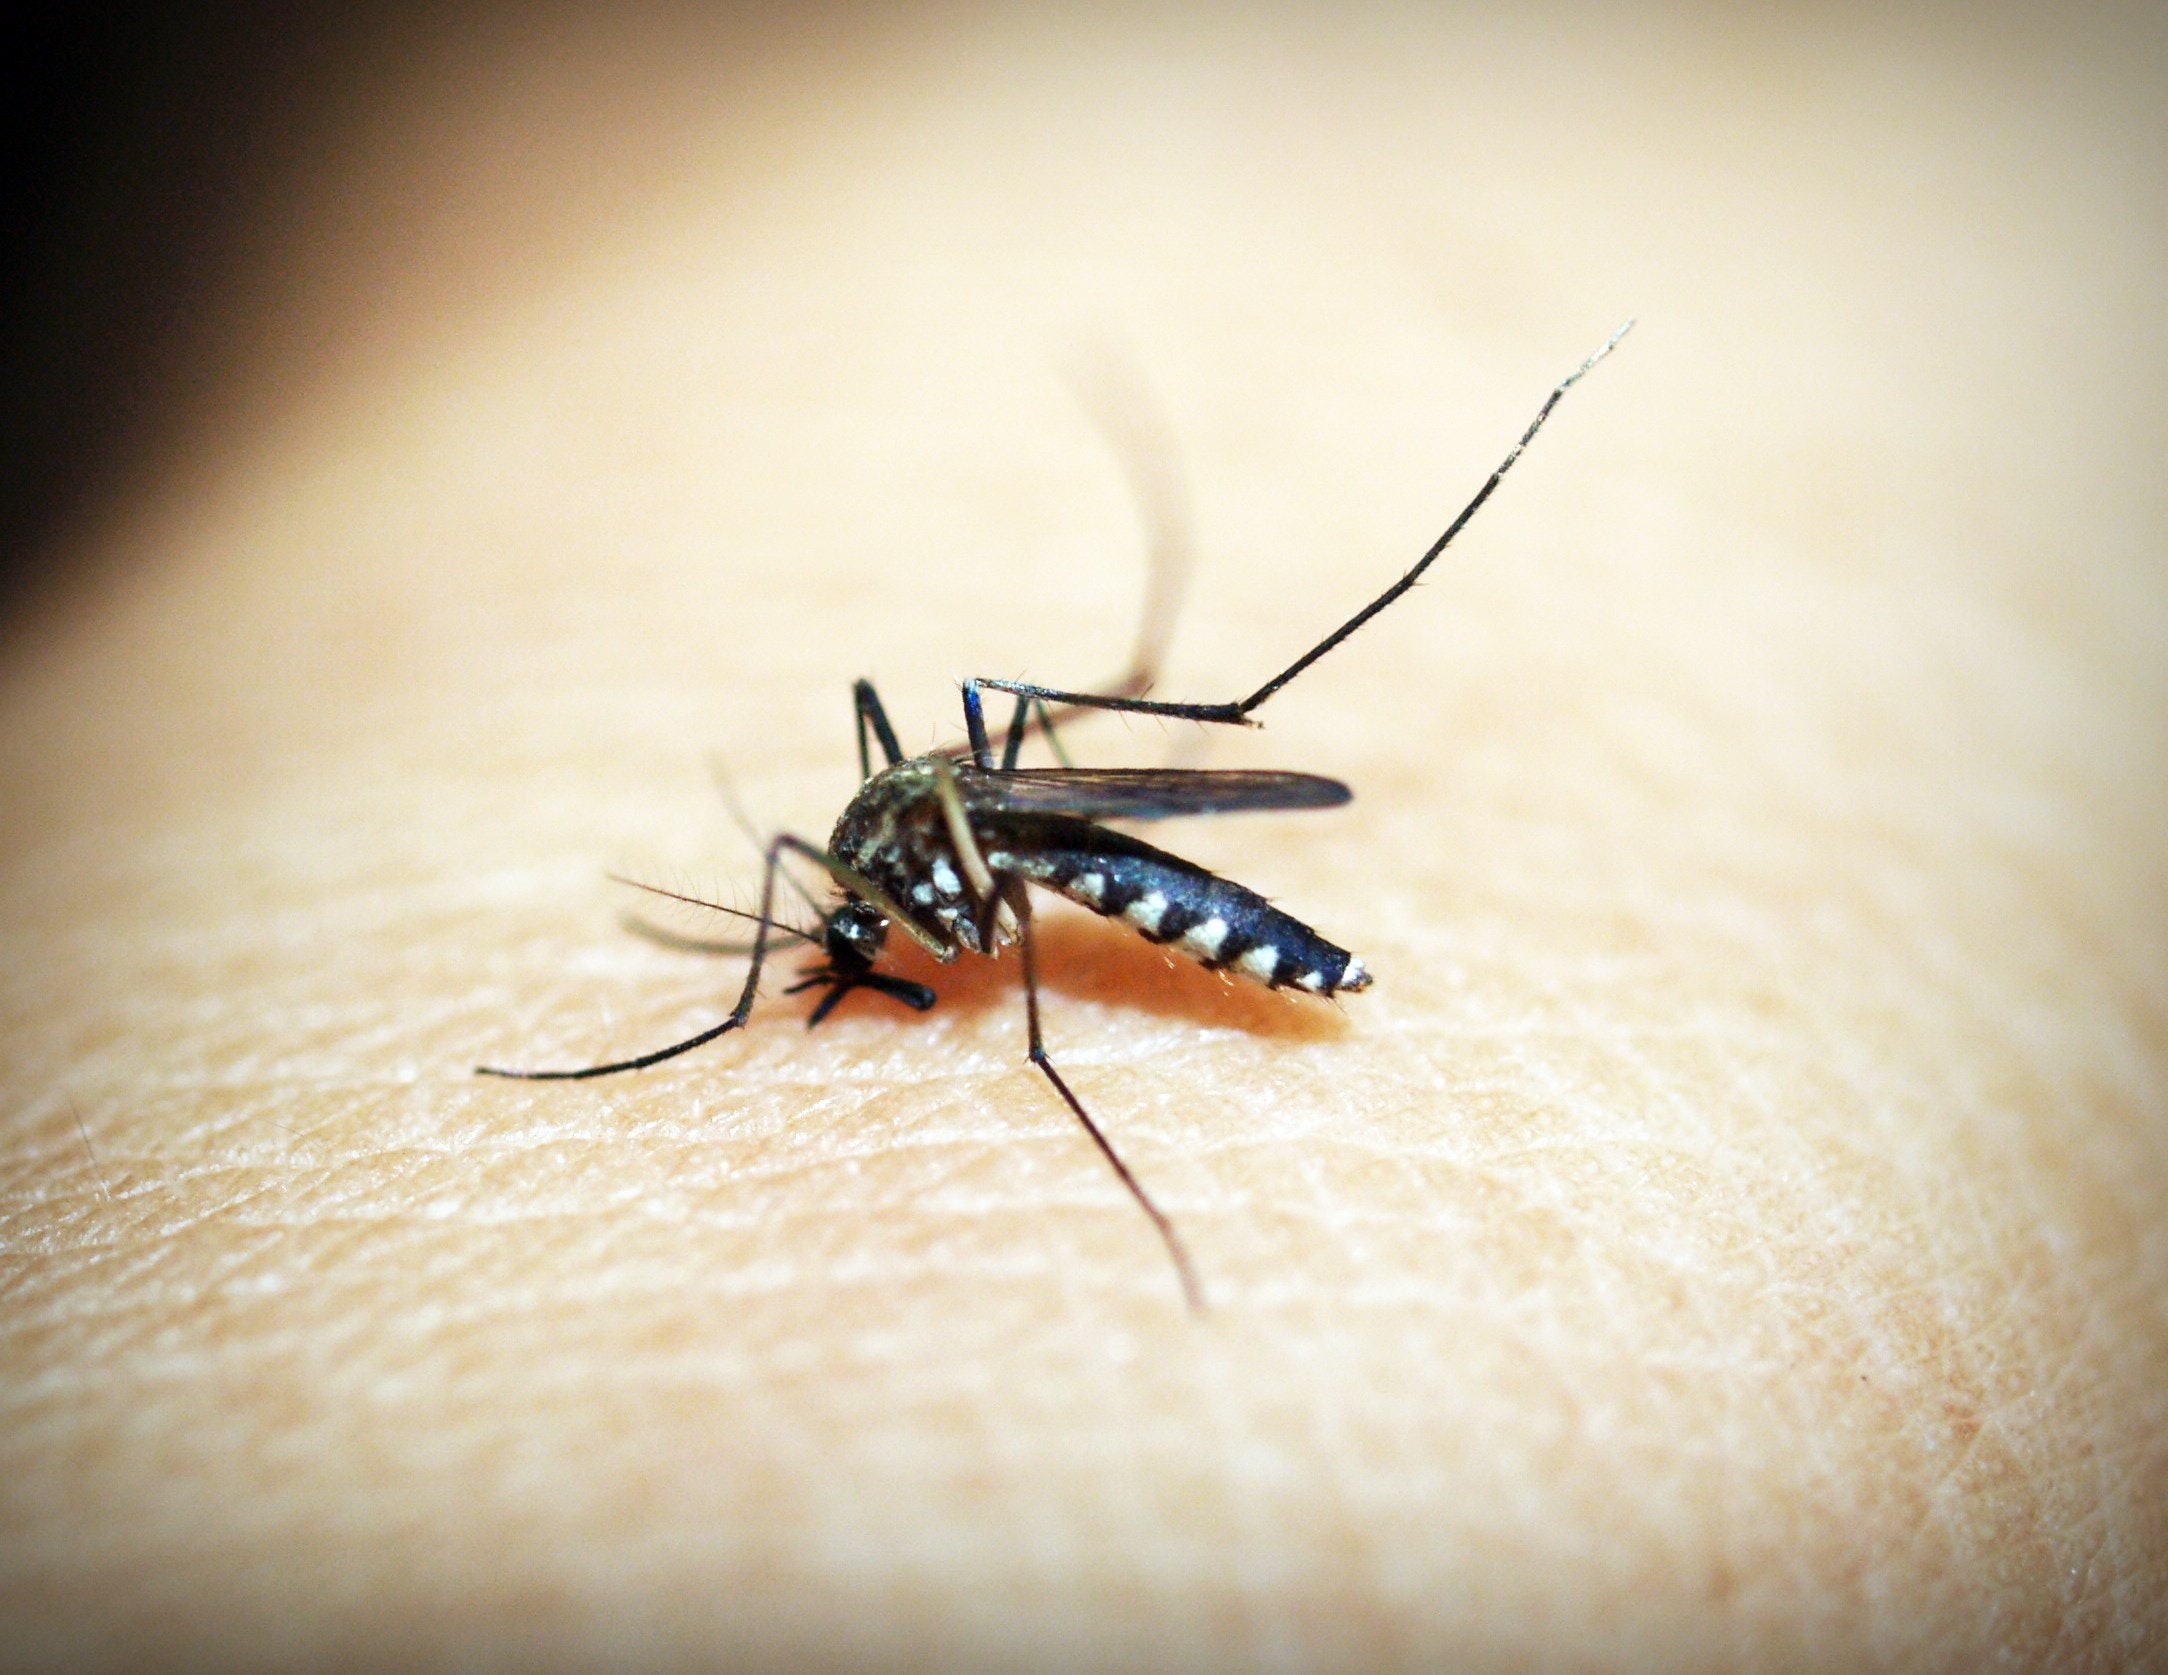 How to Get Rid of Mosquitos - Paint Covered Overalls - Durham North Carolina